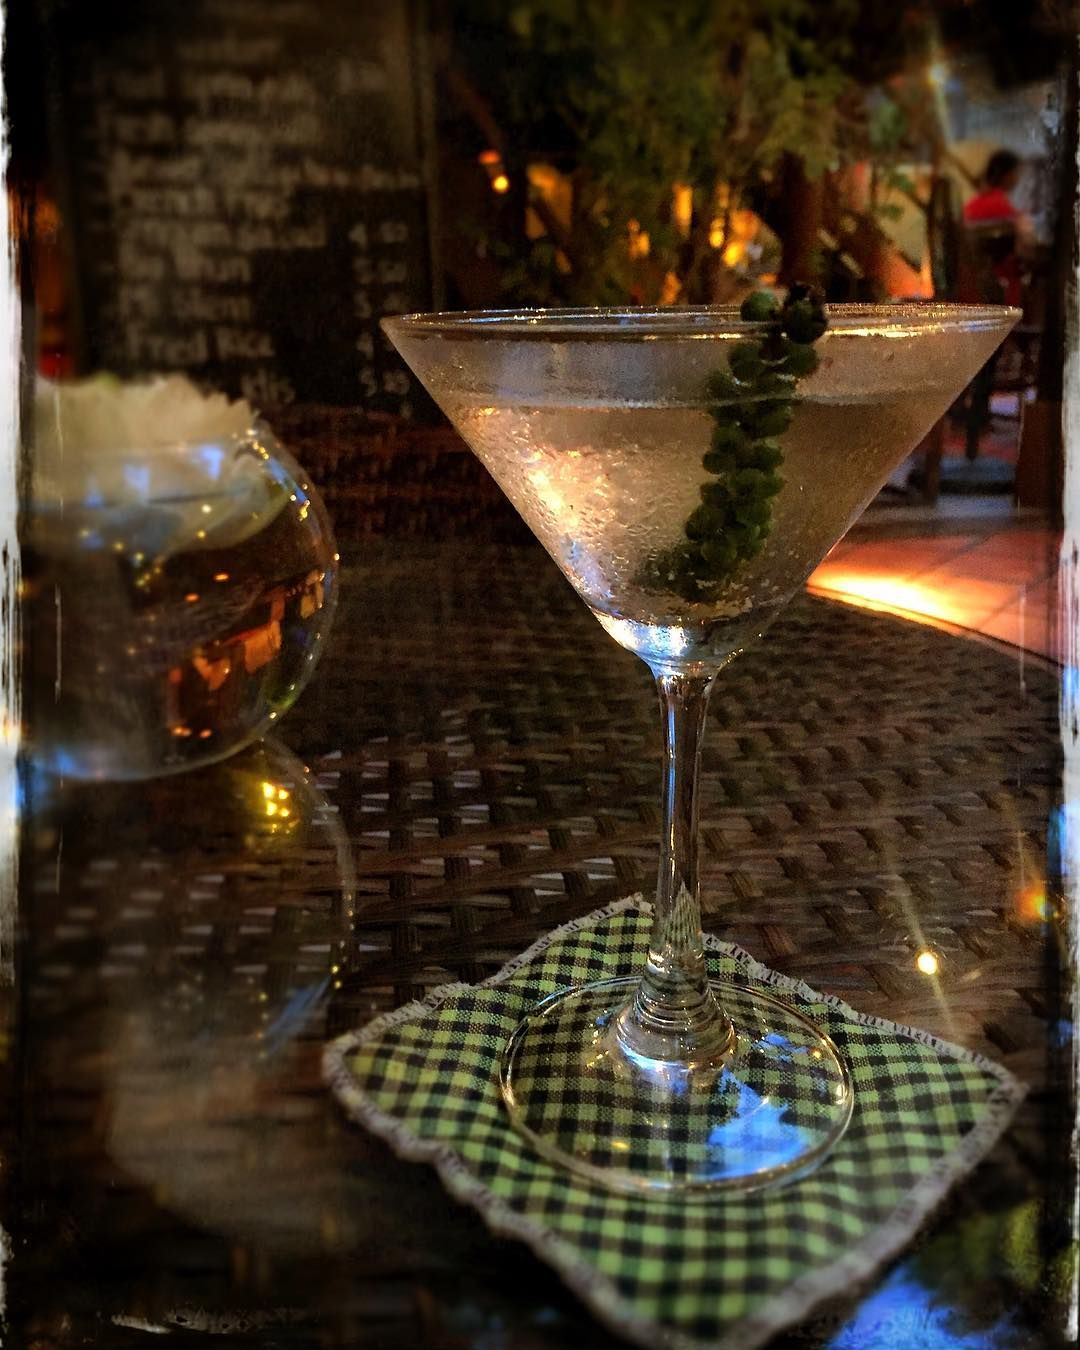 Back in Siem Reap enjoying a pepper martini at Asana Bar. #cambodia #food #cocktails #streetfood  #yummy #delicious #eat #streetfood #foodadventures #tastetravel #tastetravelfoodadventuretours #sunshinecoast #australia #holiday #vacation #instafood #instagood #followme #localsknow #cookingclass #foodie #foodietour #foodietravel